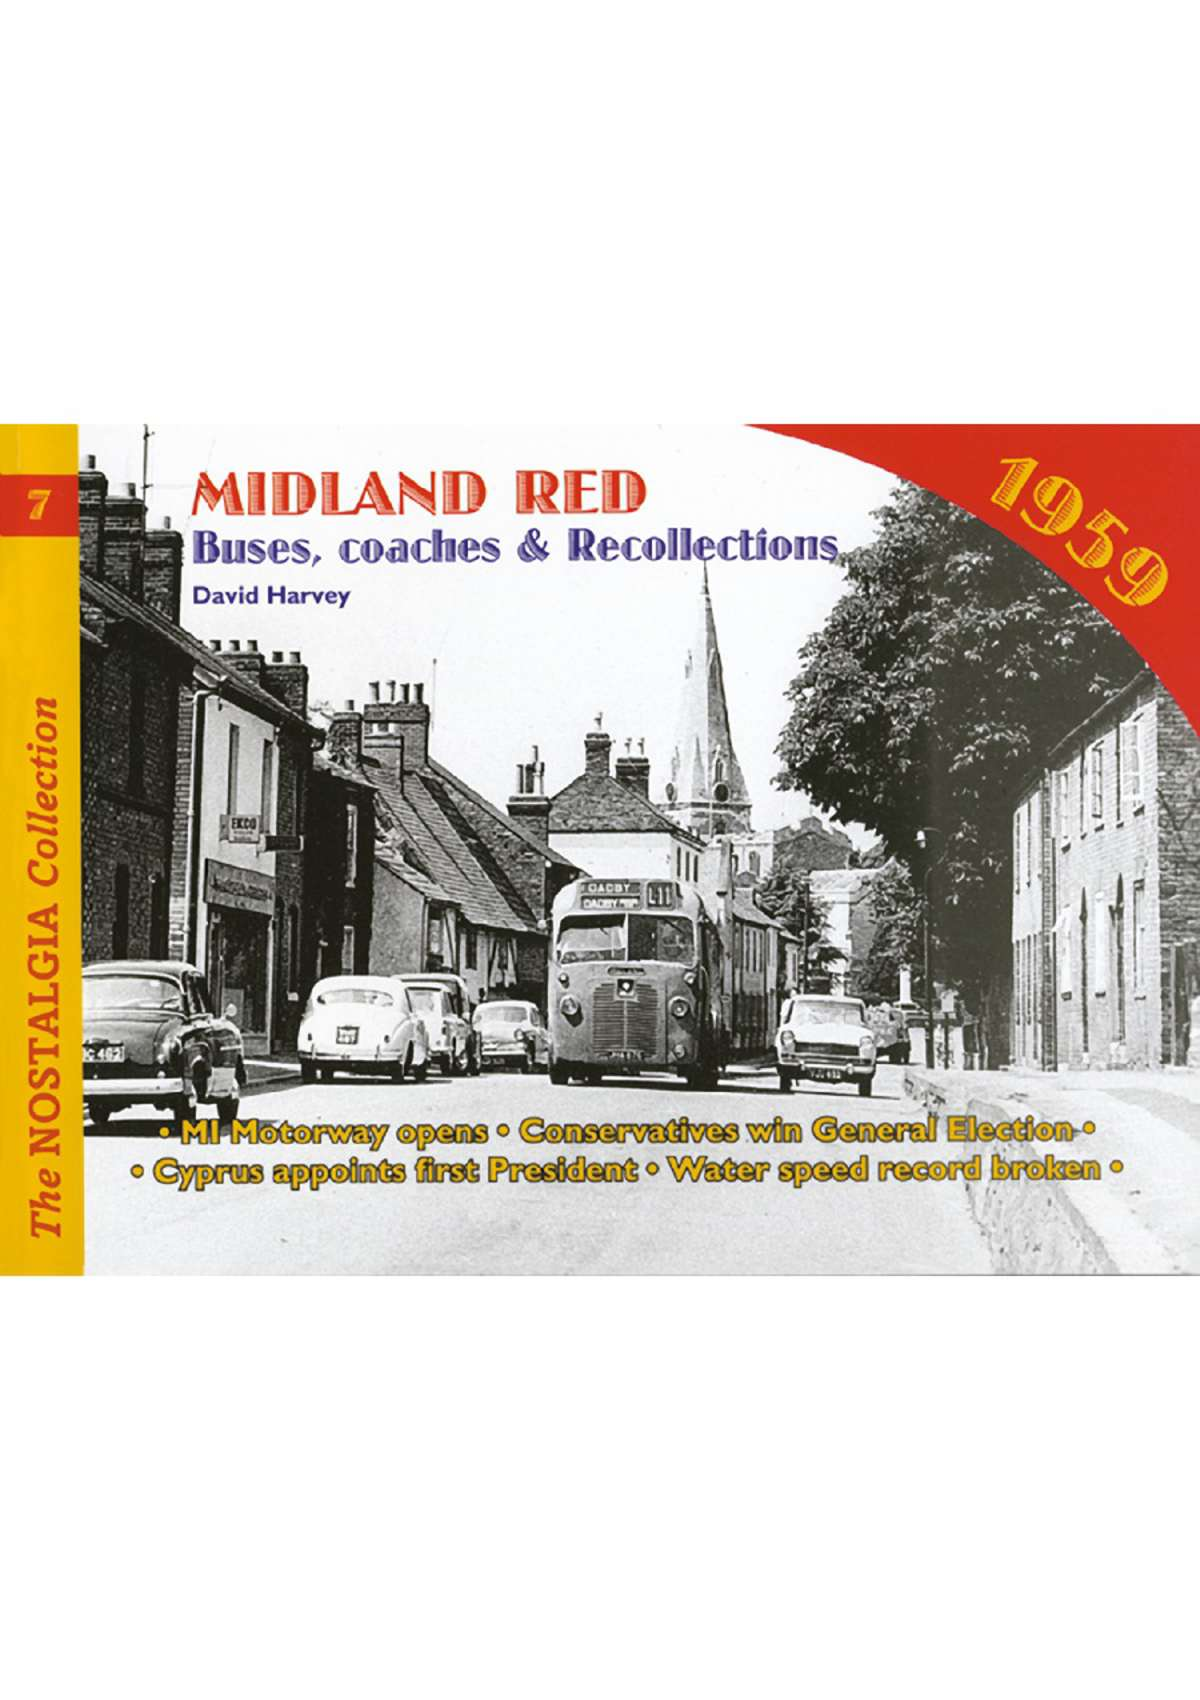 3016 - Vol 07: Buses, Coaches & Recollections: Midland Red